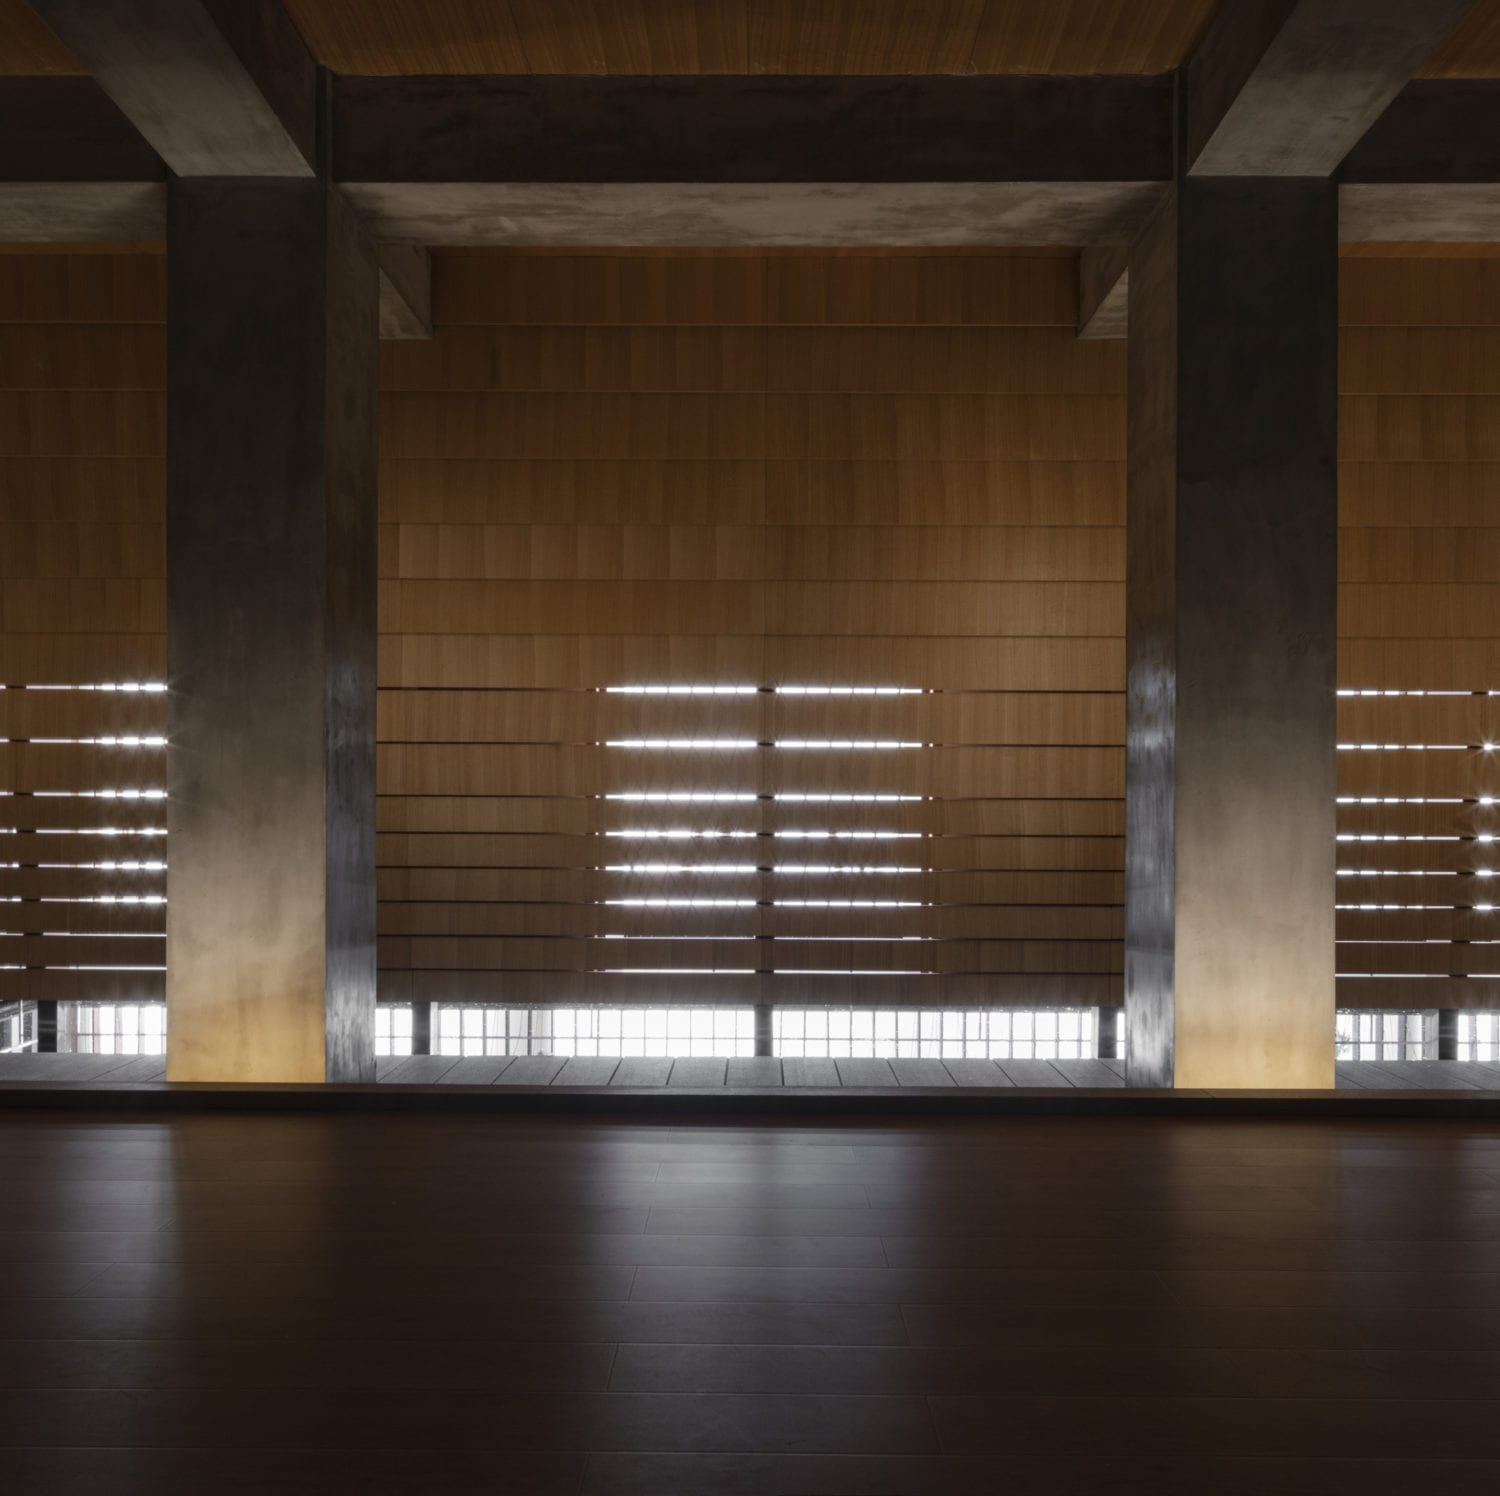 Meditation Hall In Huanghua China By Hil Architects Yellowtrace 14